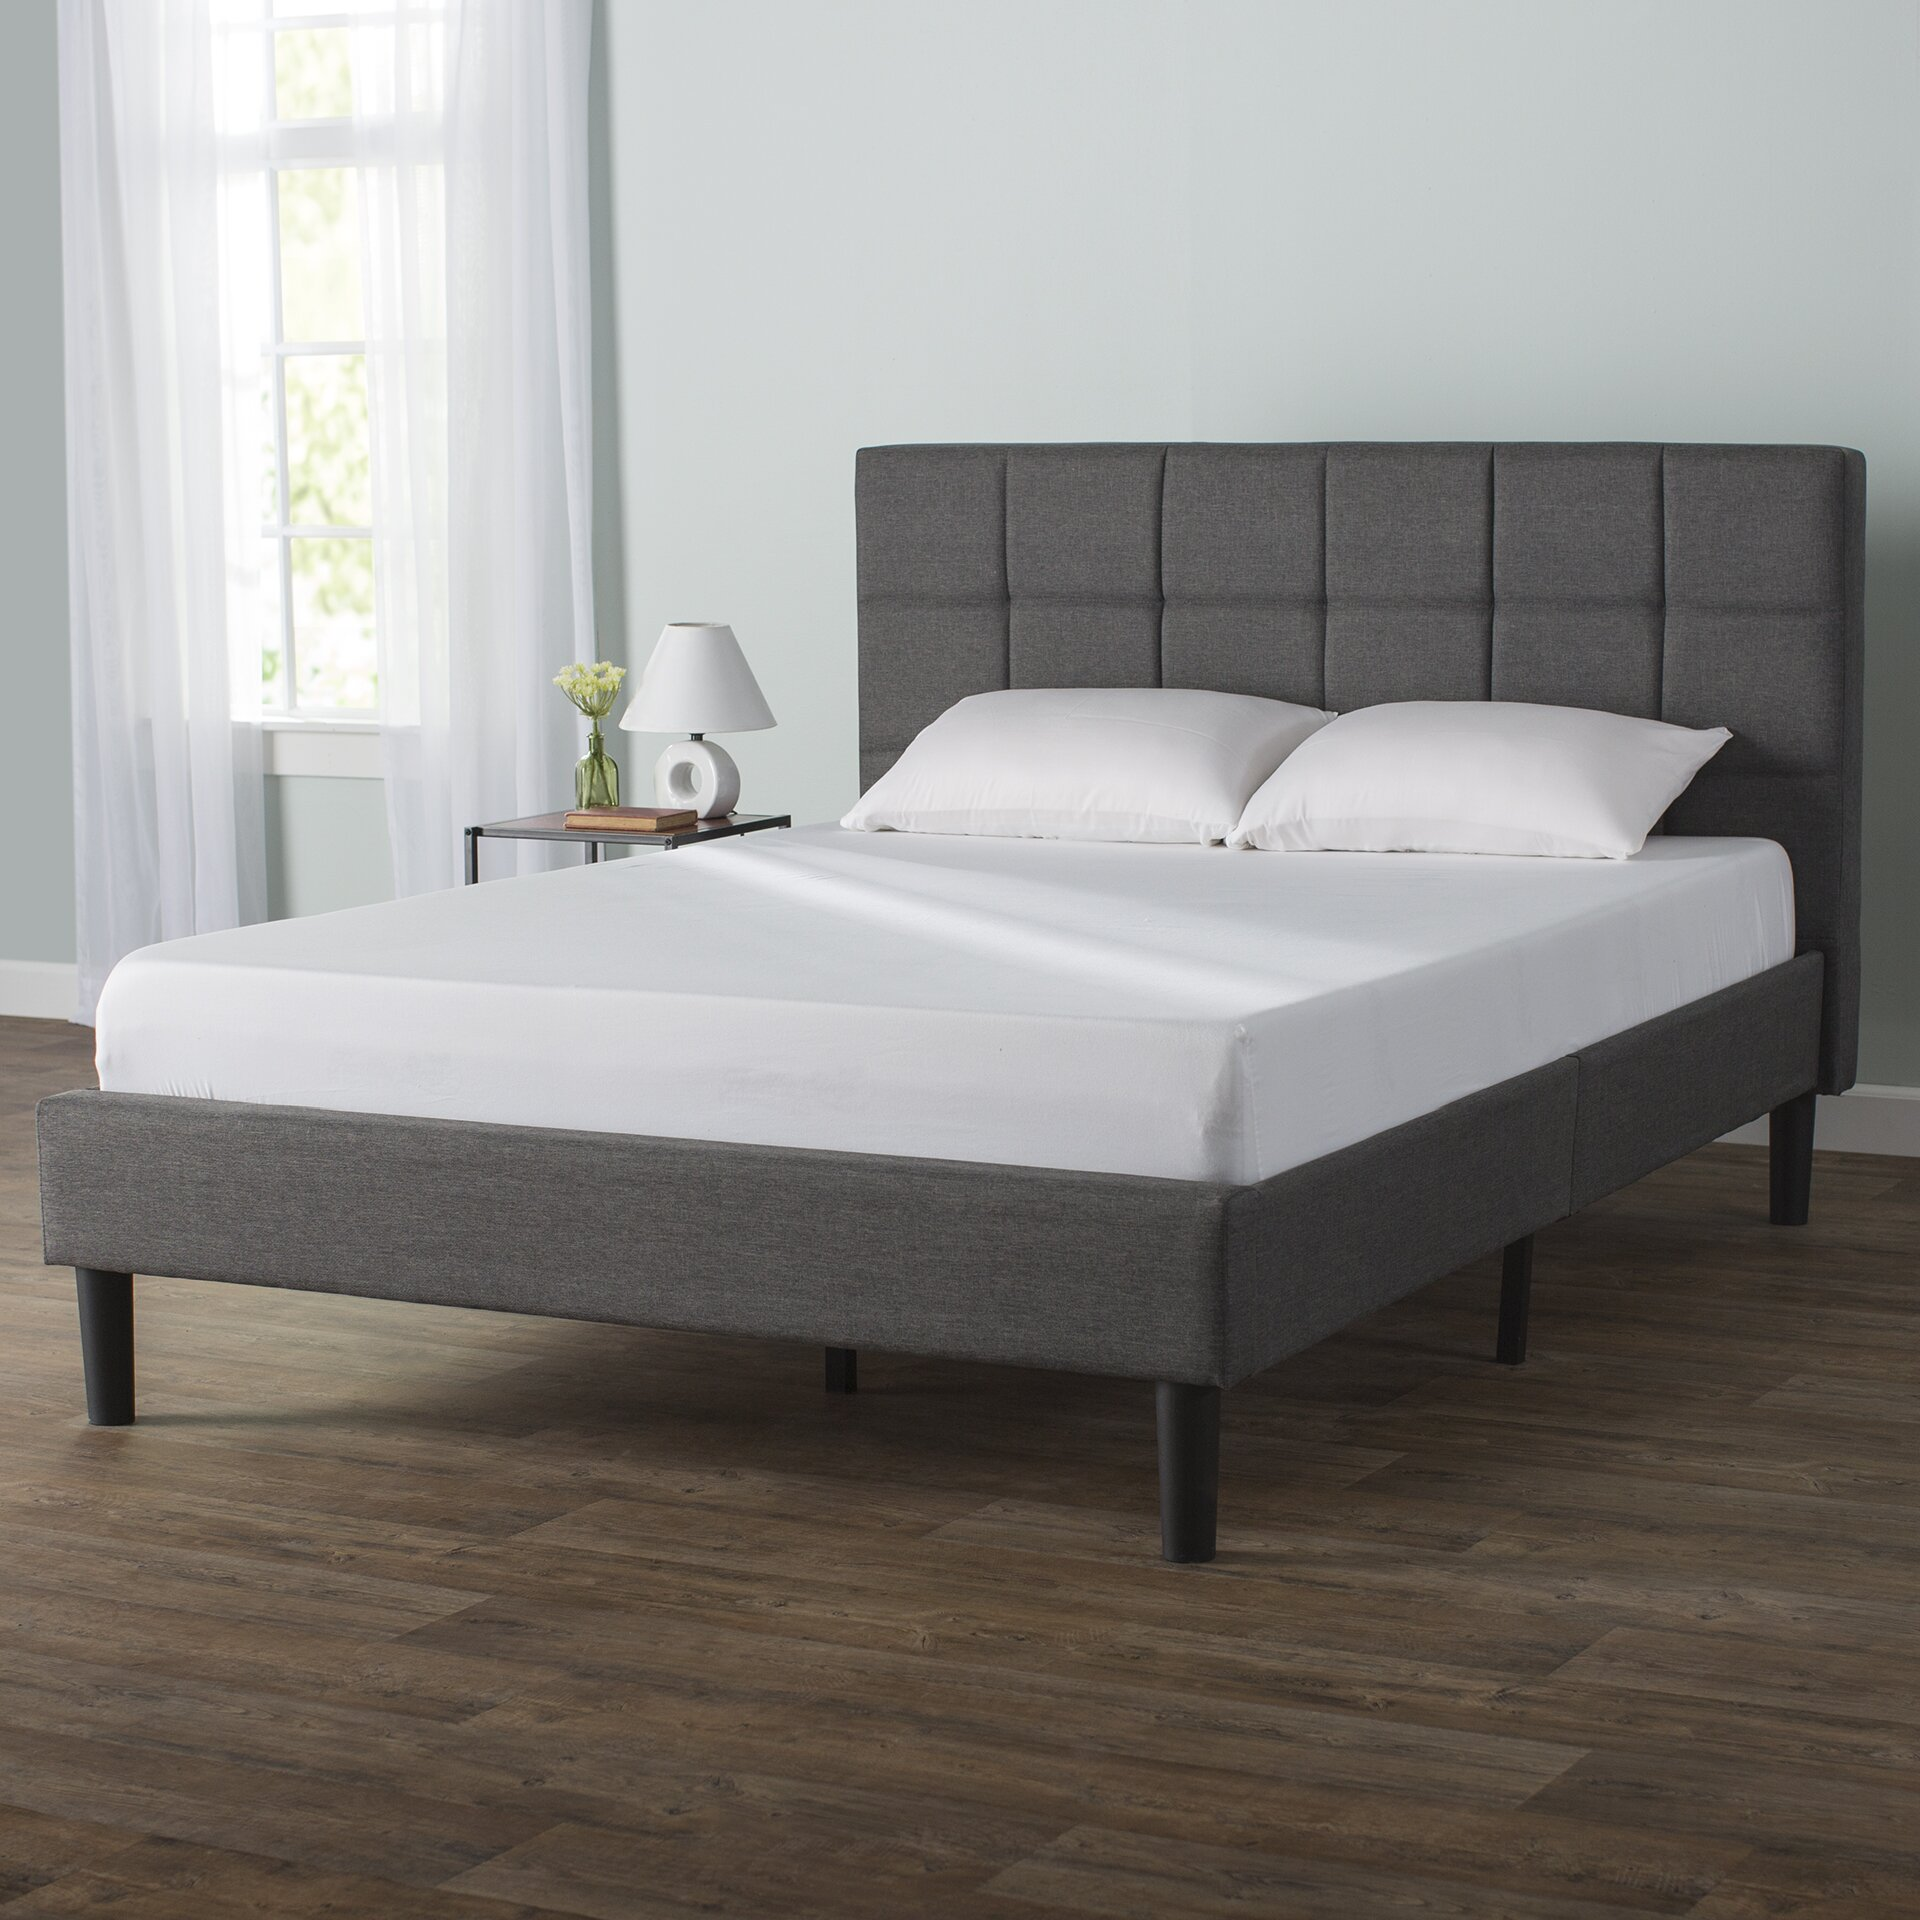 Colby upholstered platform bed reviews birch lane for Upholstered beds